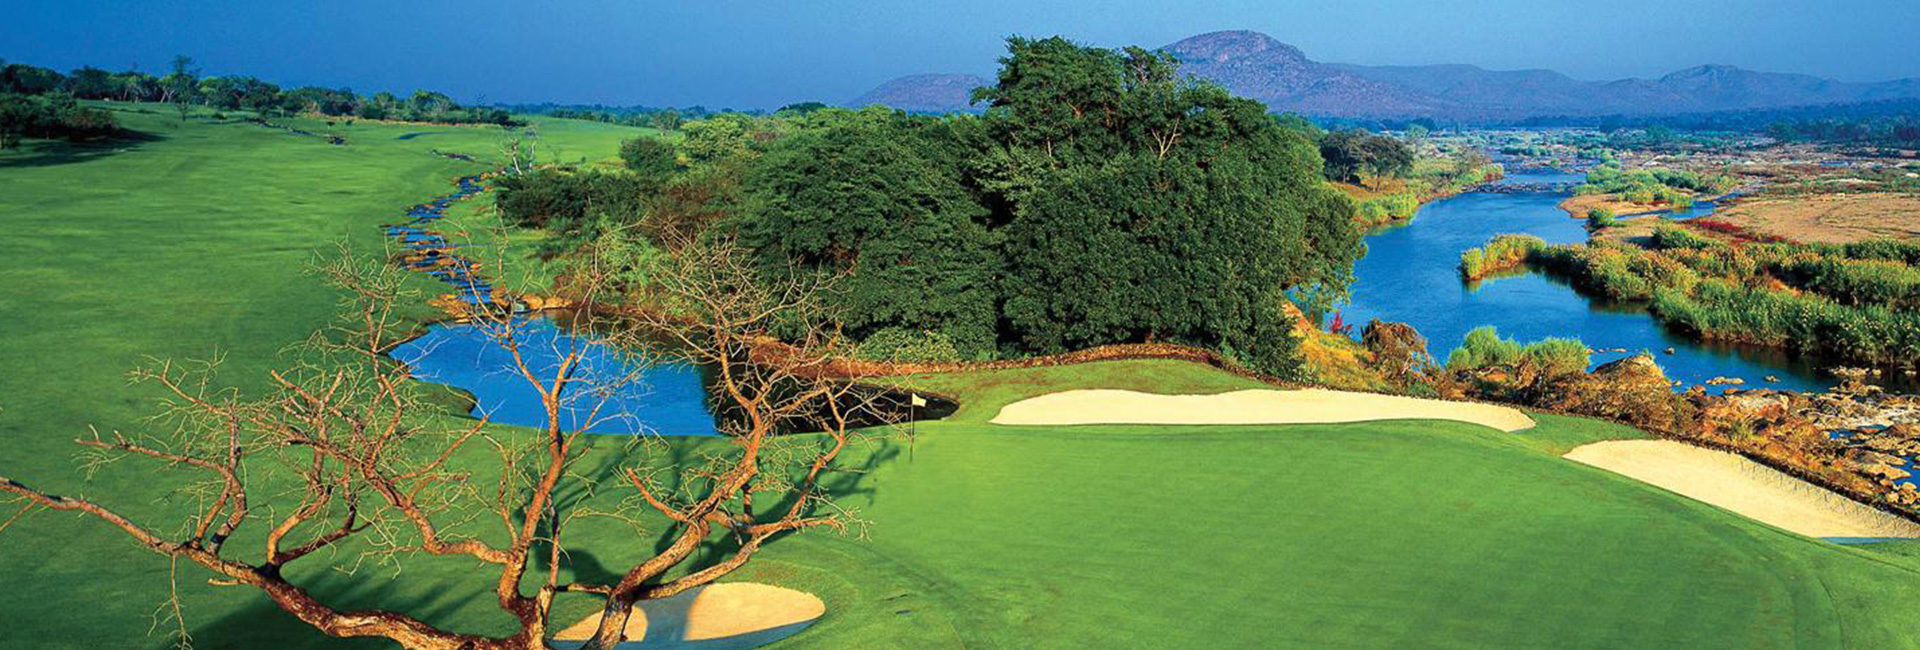 The world's most exquisite golf courses